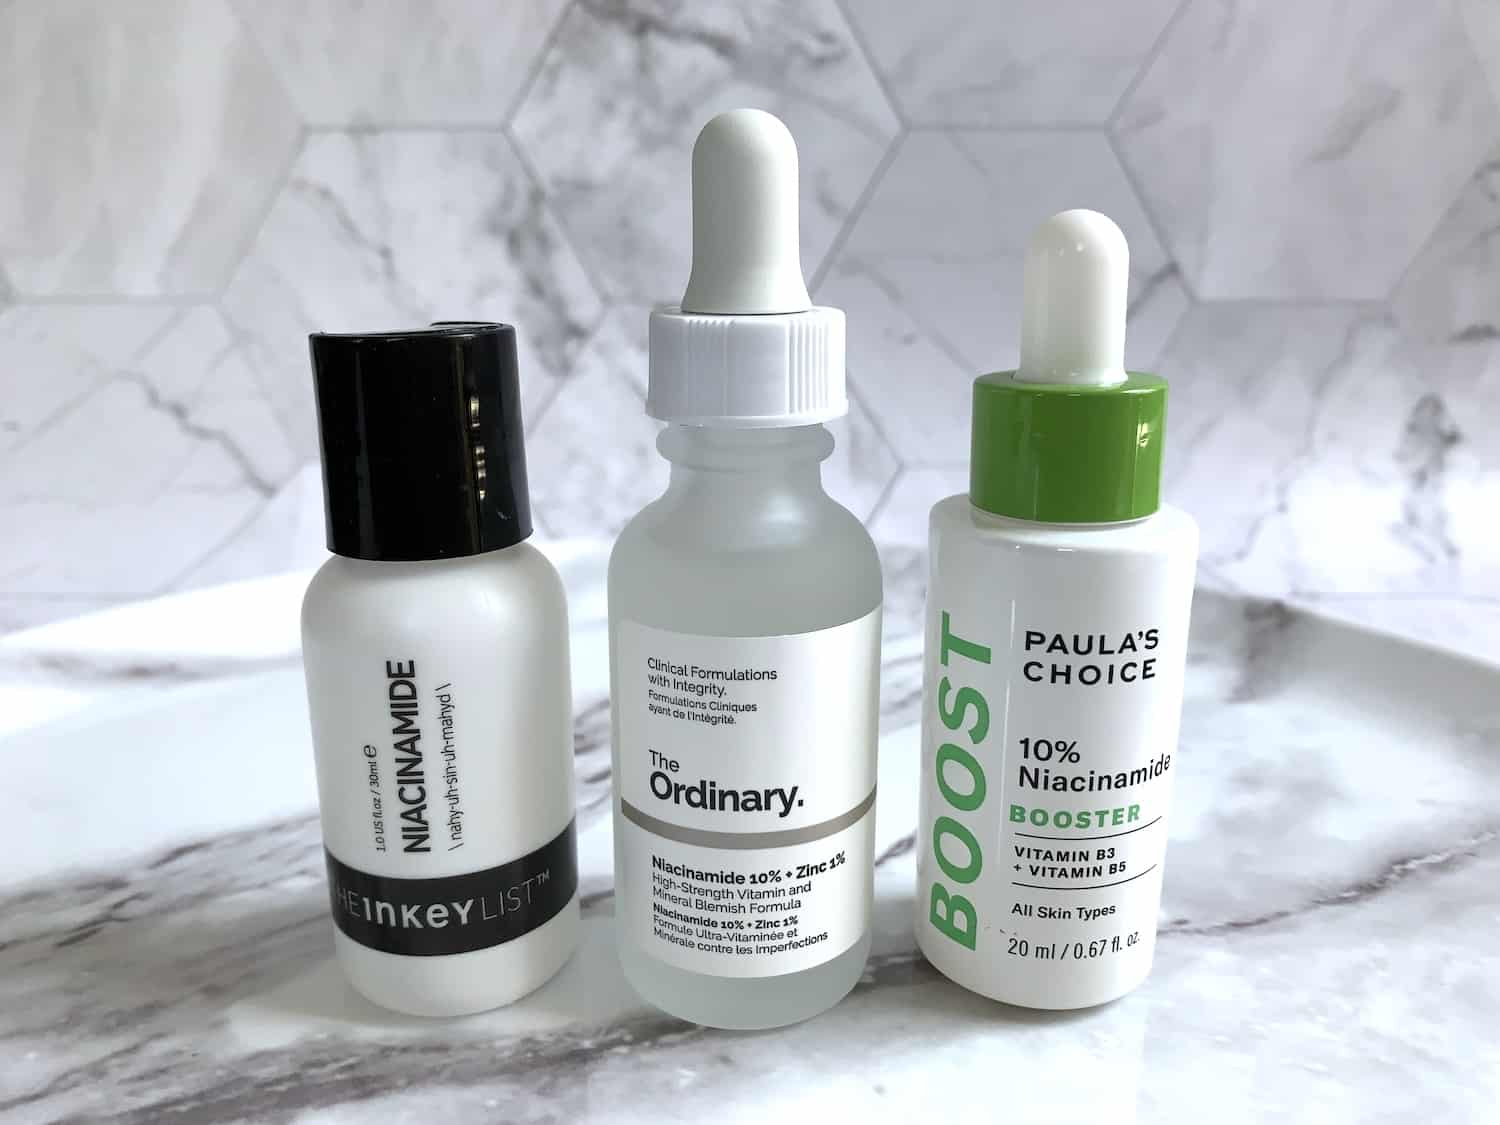 Niacinamide - The Ordinary, The Inkey List & Paula's Choice